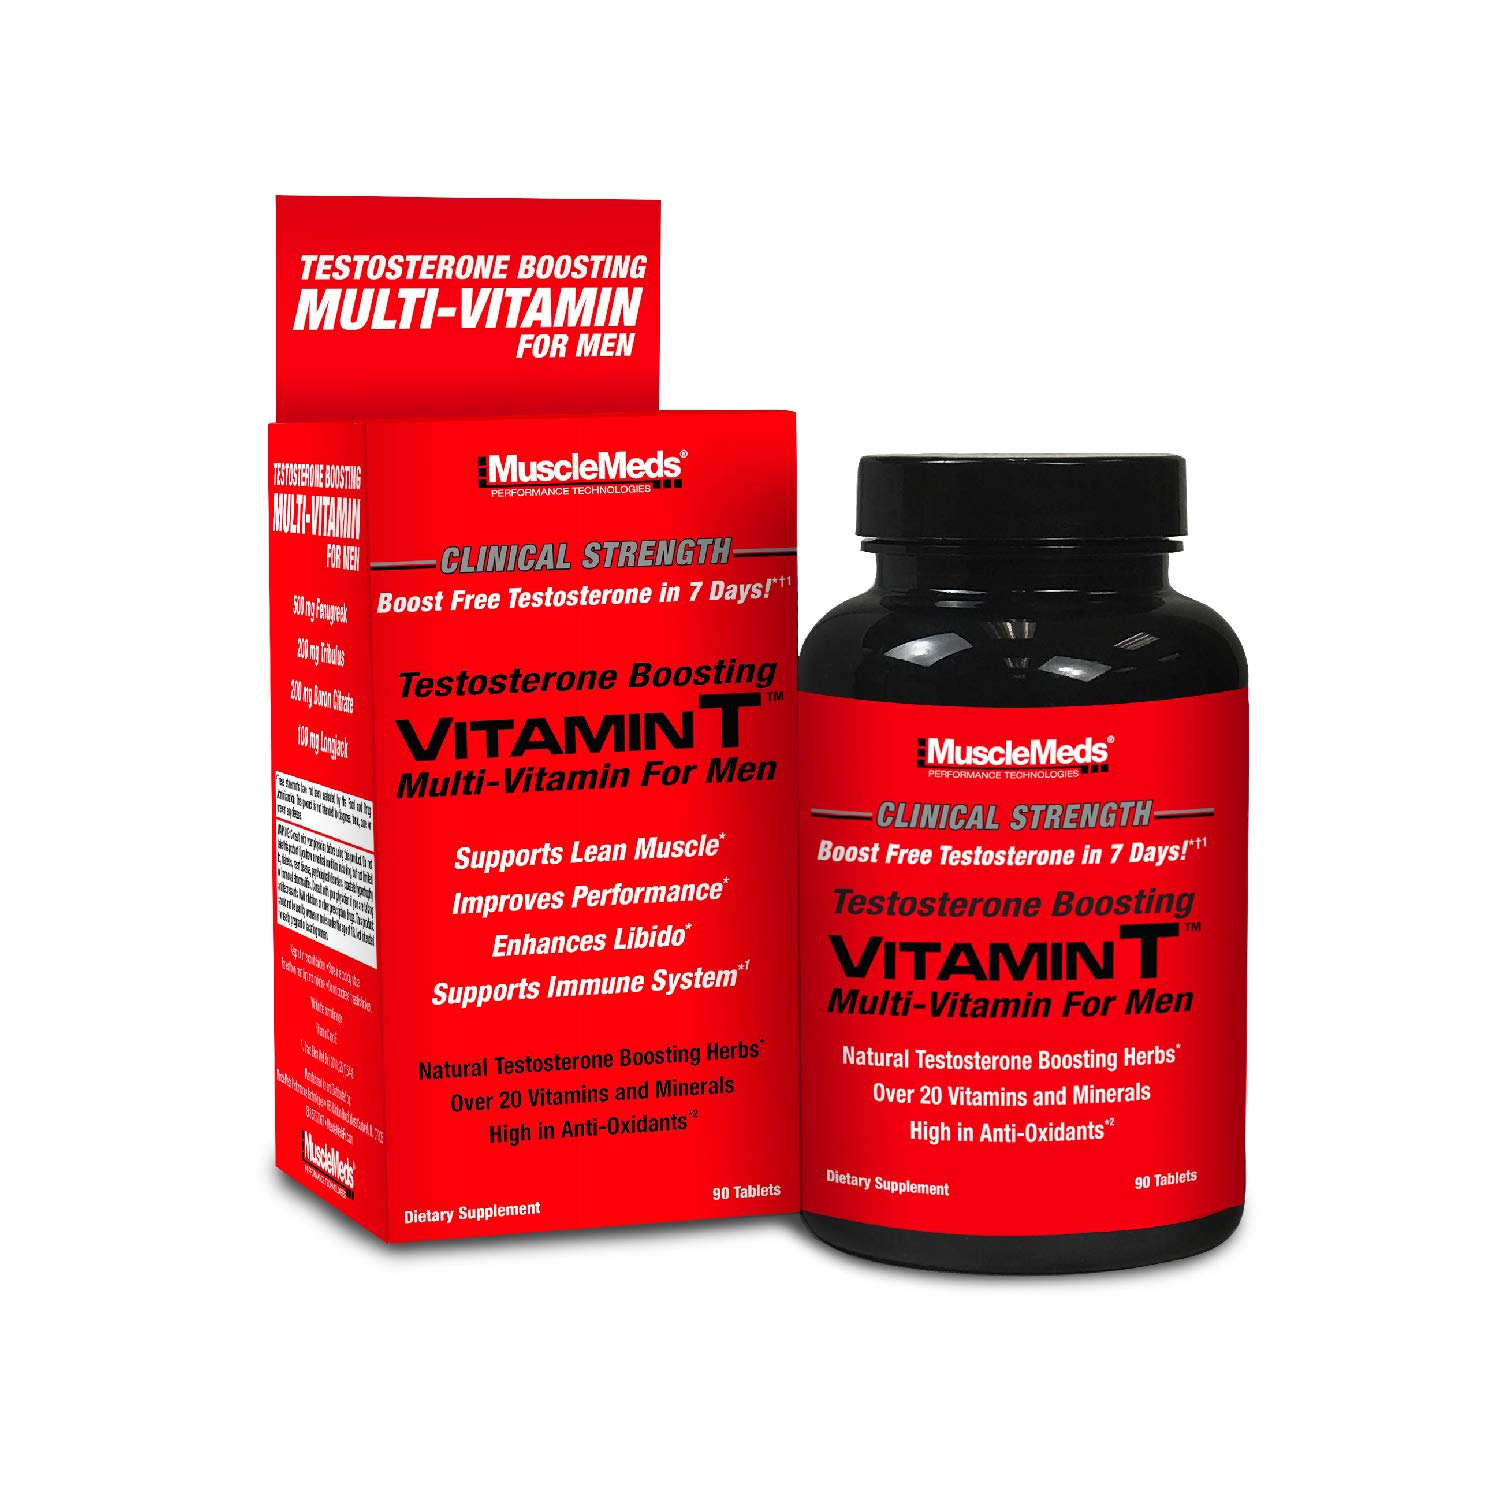 MuscleMeds Vitamin T Daily Complete Multivitamin for Men Enhances Testosterone, Muscle Building & Sexual Performance, 20 Vitamins & Minerals, Fenugreek, Tribulus, Longjack, 90 Count